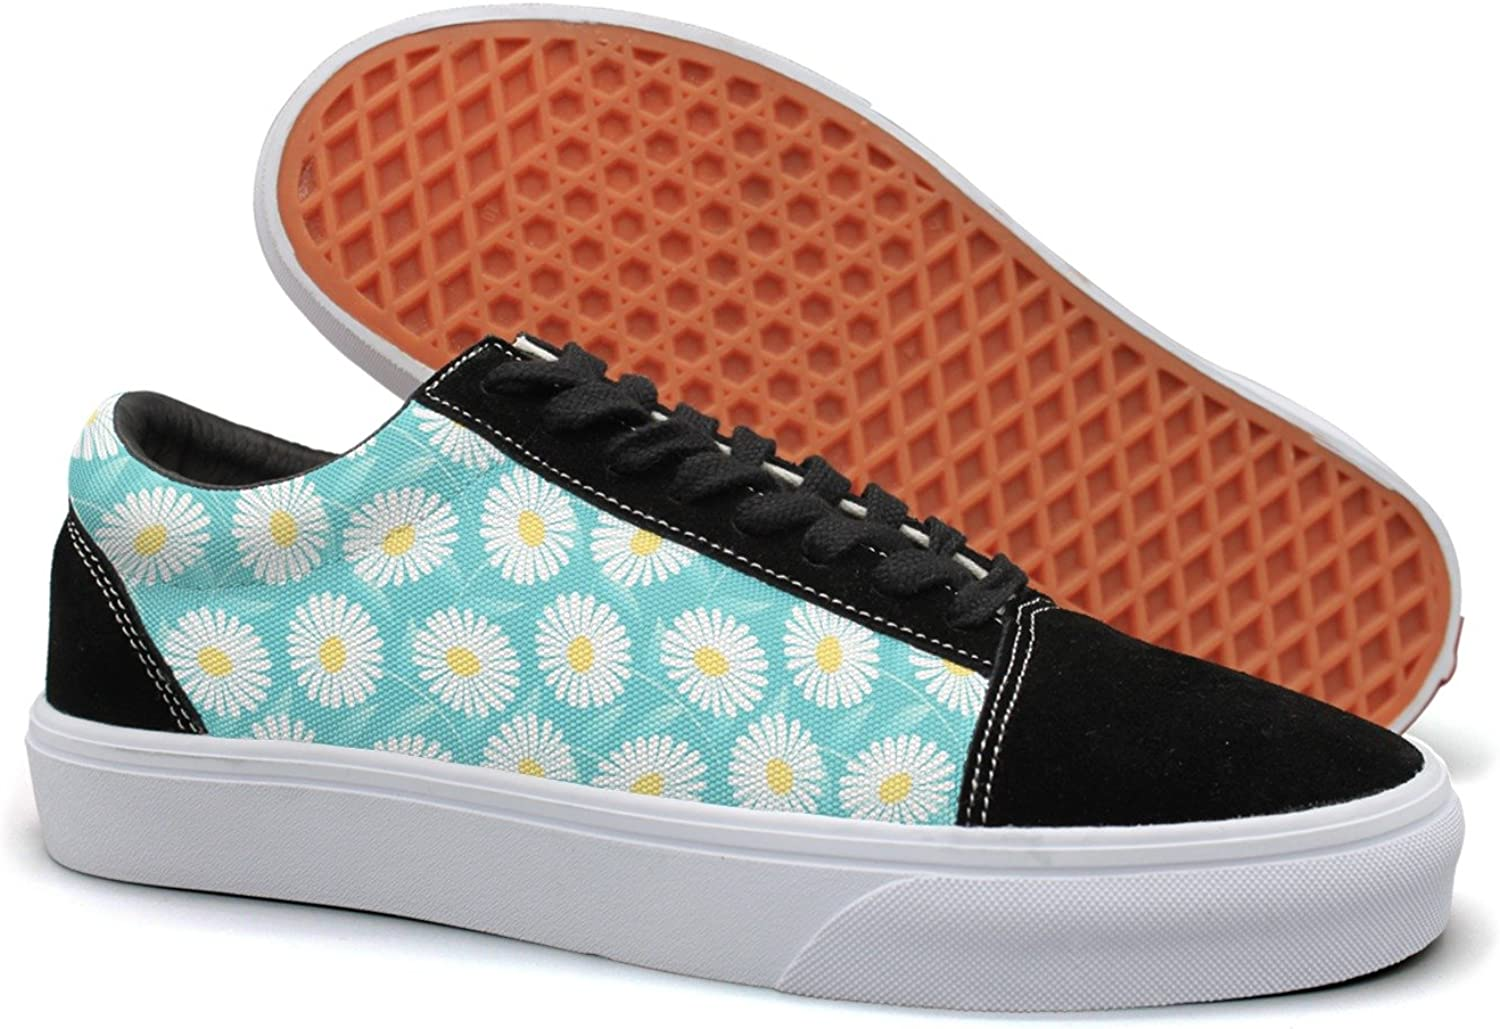 Feenfling bluee Daisy Flower Womens Casual Suede Canvas Low Top Sneaker